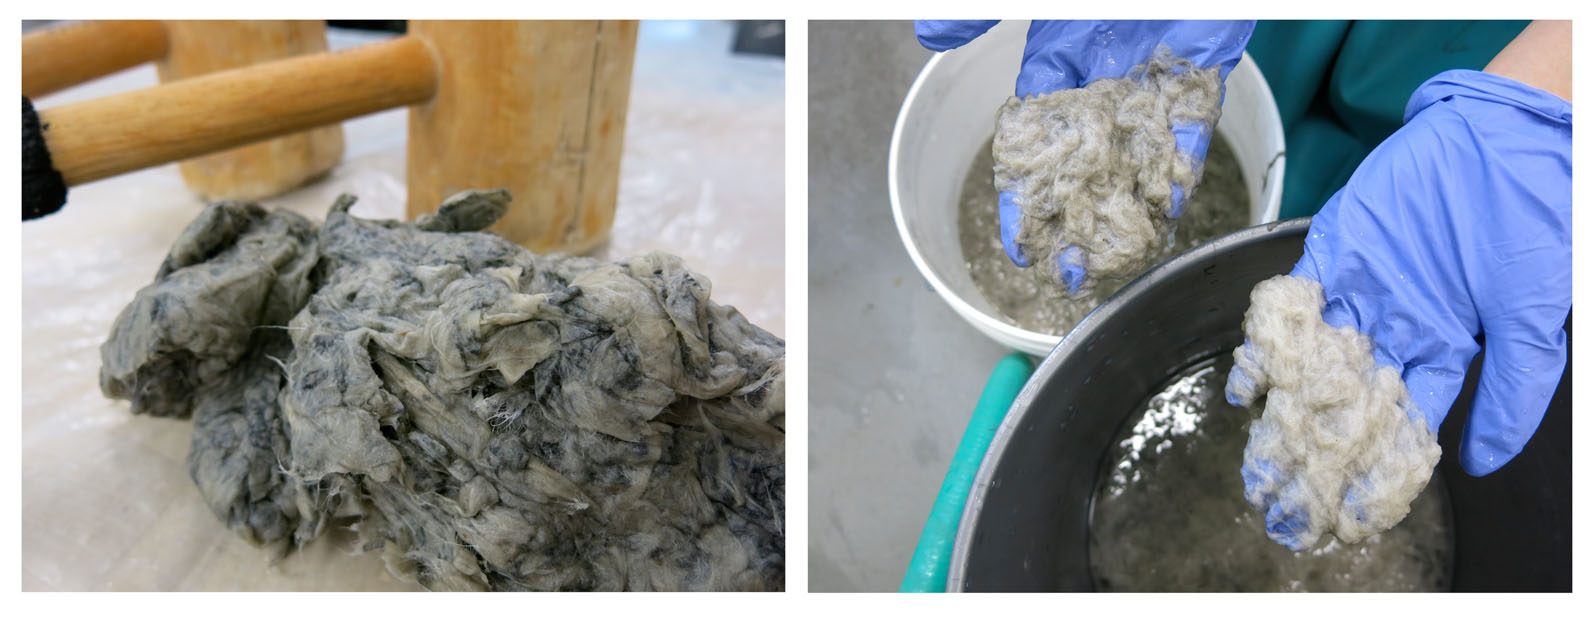 Above left: cooked fiber prior to beating (note: printed lettering is still visible in the fiber). Top right: beaten and washed fiber, 1 and 3 times processed.